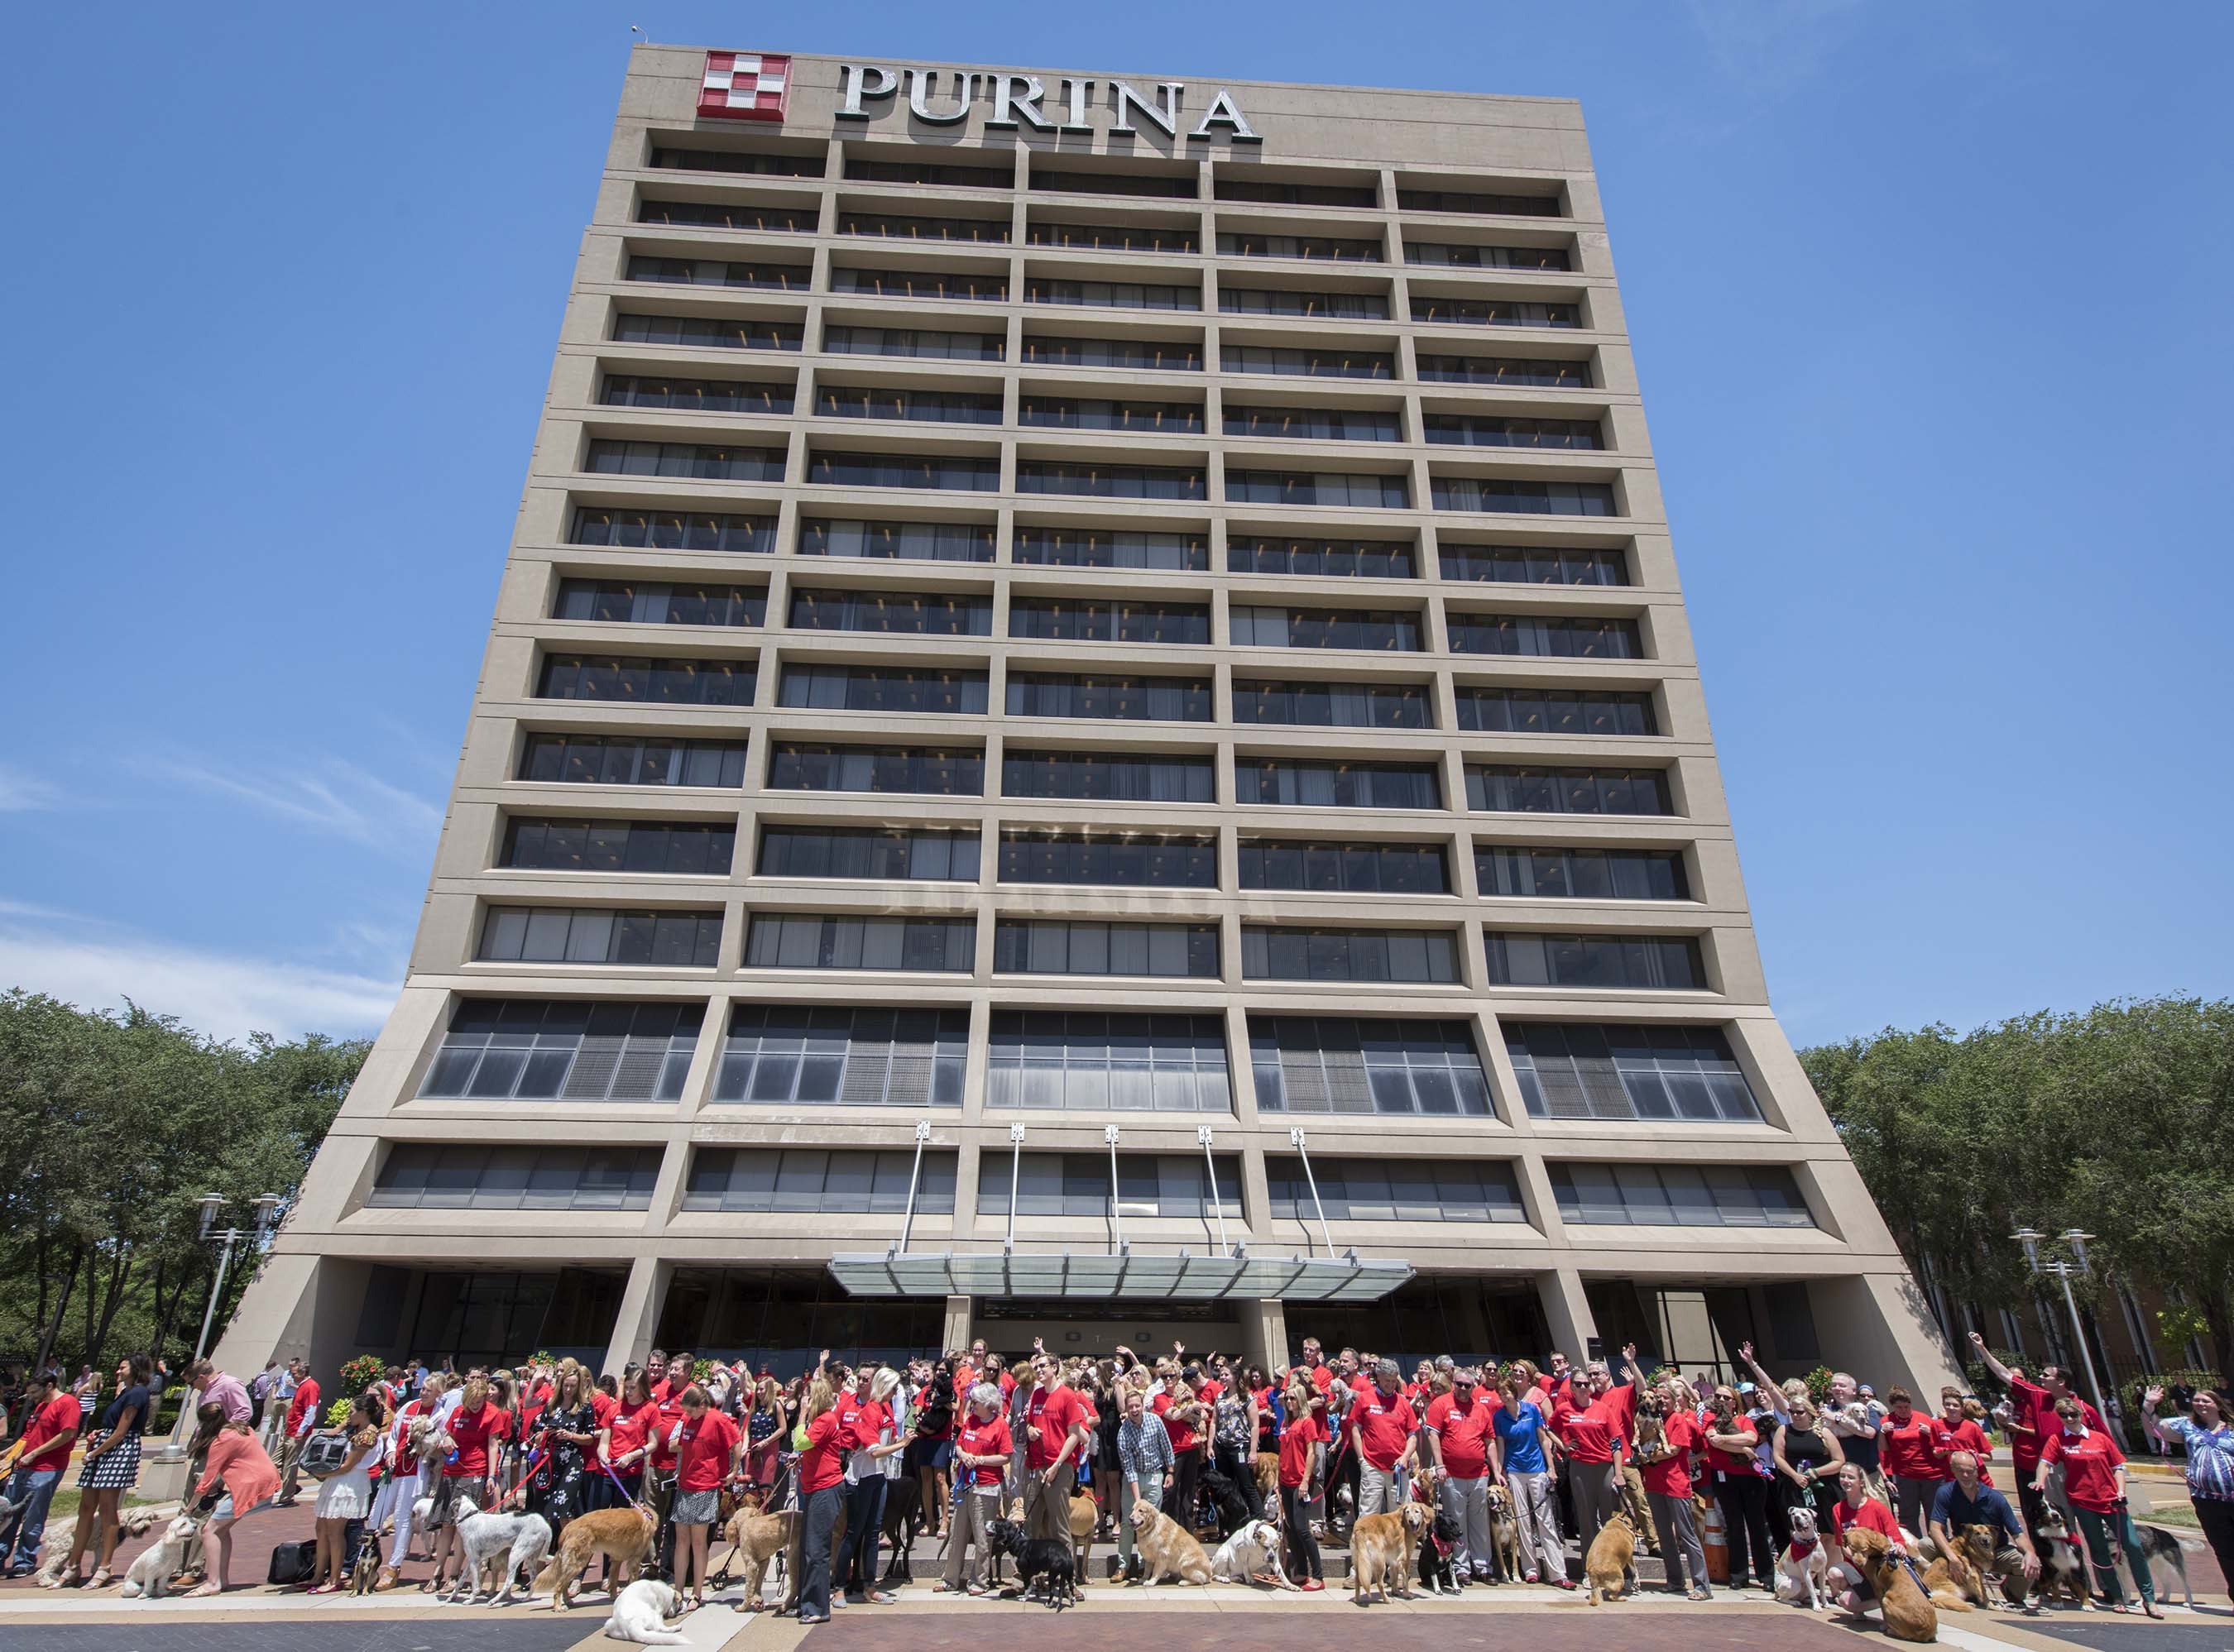 To celebrate #petsatwork Purina and partners attempted to break the world record for Most Pets in the Workplace in One Day. This was originally set by Purina in 2015 with 281 pets.